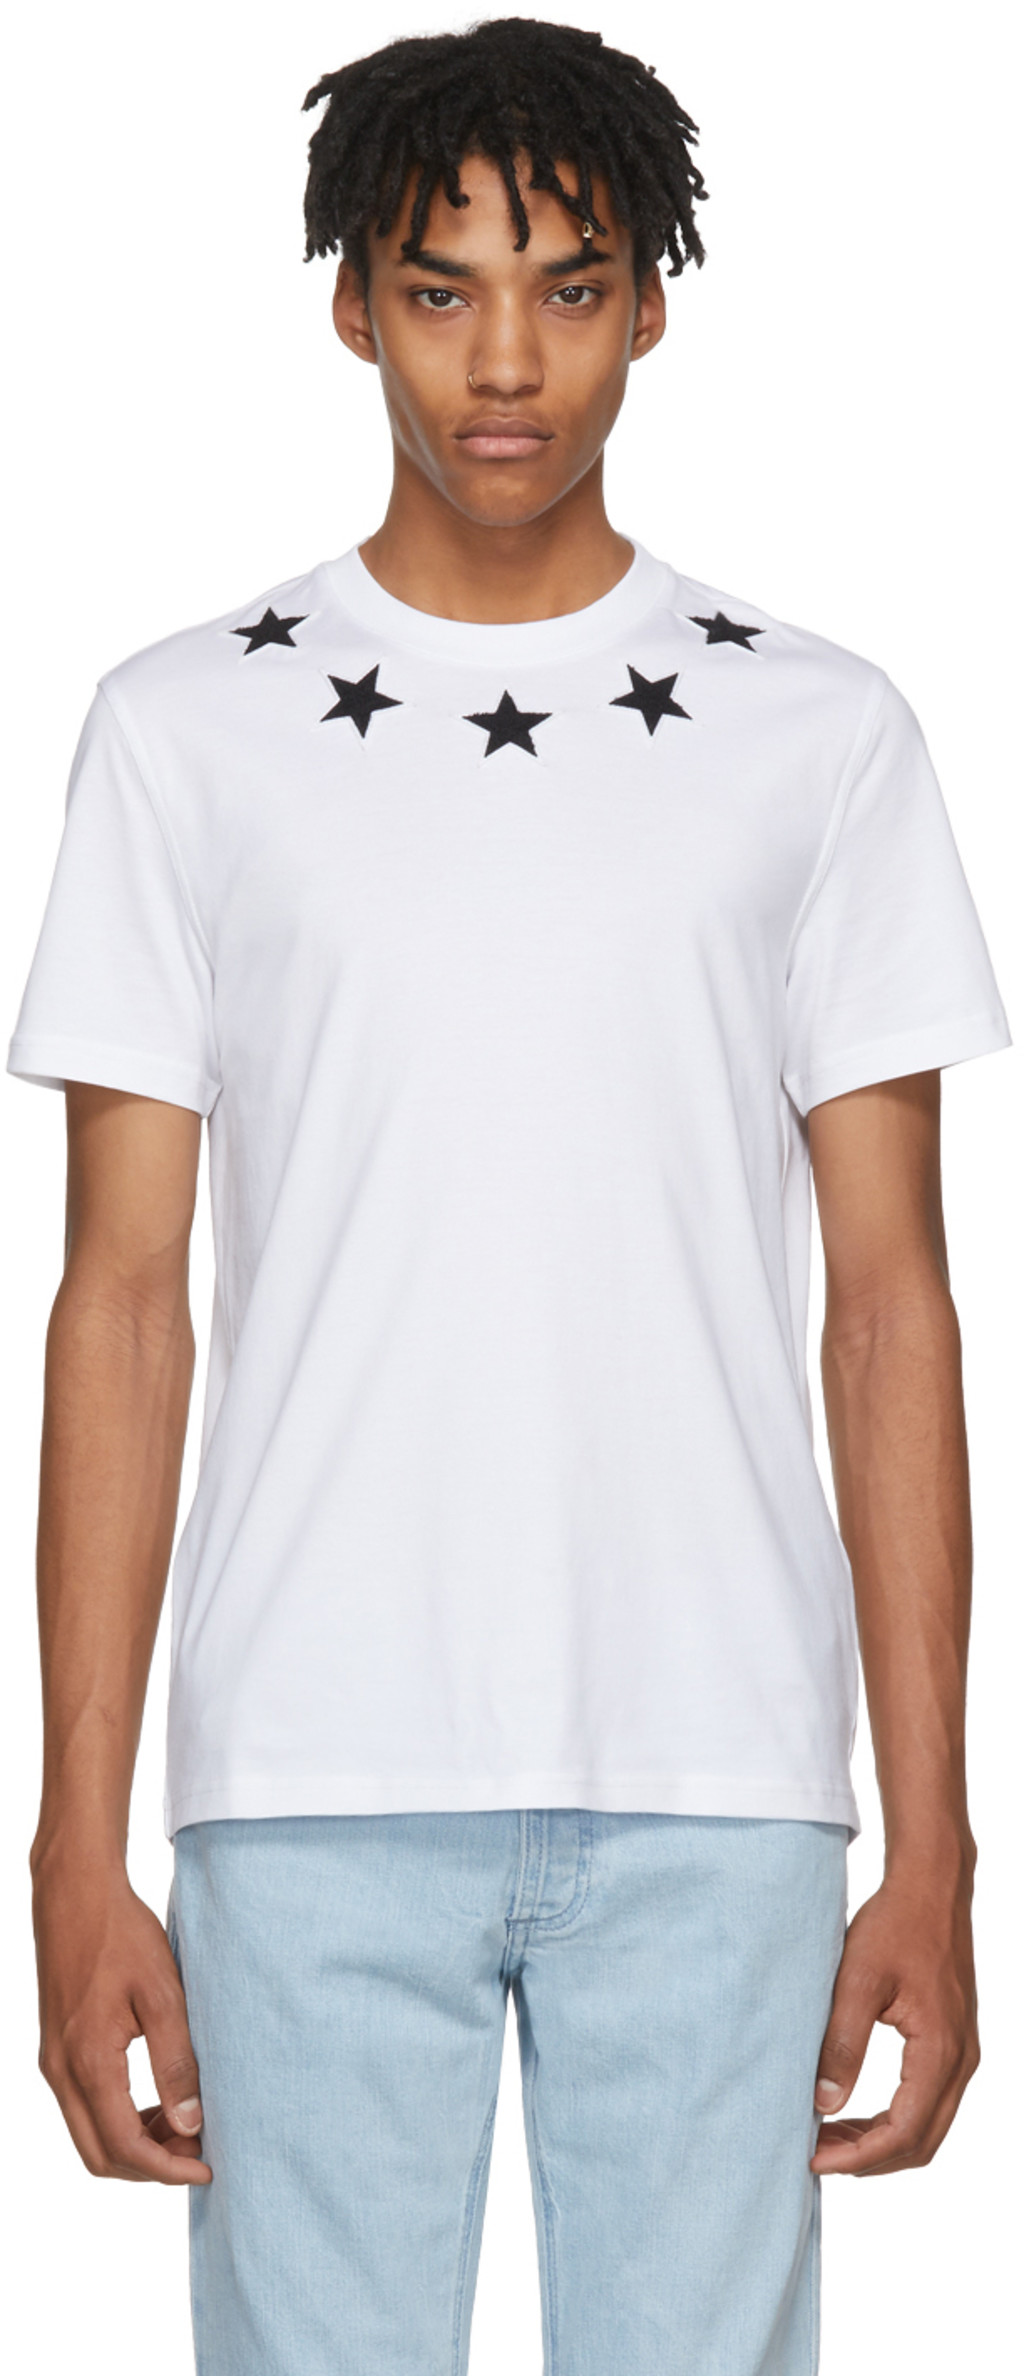 White and Red Iris Pocket T-Shirt Givenchy Shop Online Clearance Very Cheap Buy Cheap Footlocker Pictures Wiki Sale Online YtkWYwtG